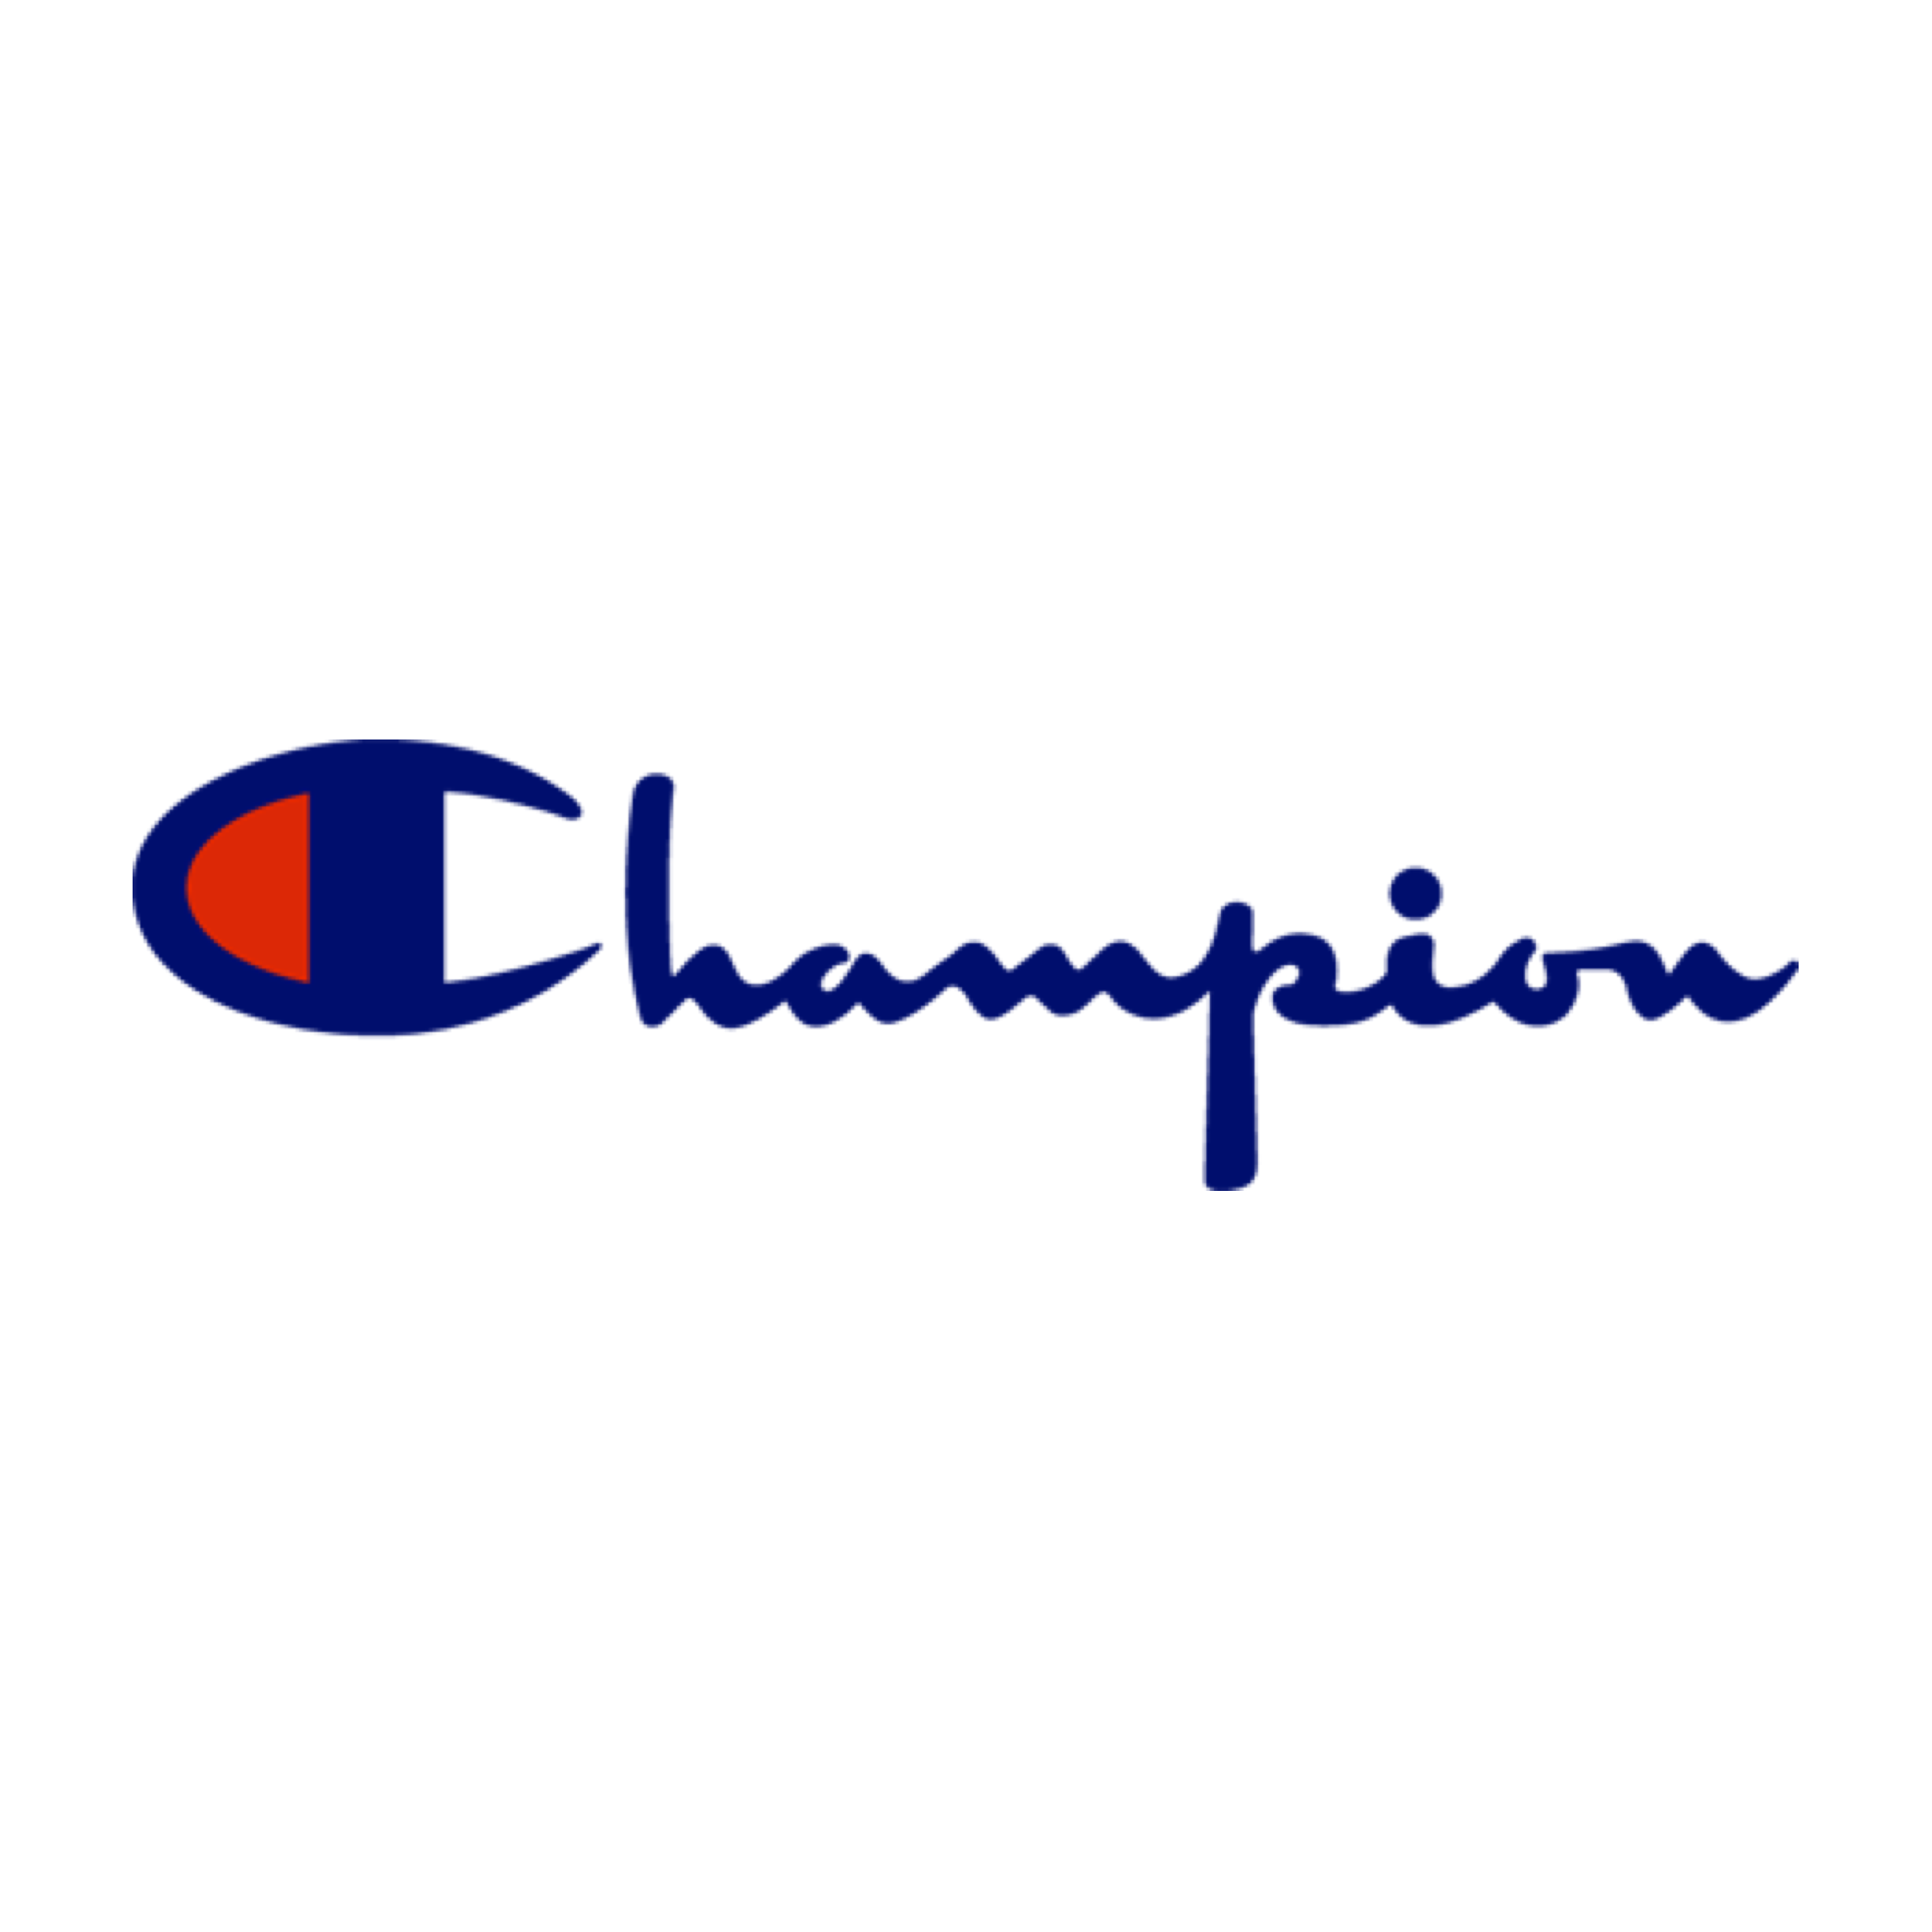 champion champion logo champion brand wallpaper backgrounds iphone wallpaper wallpaper downloads